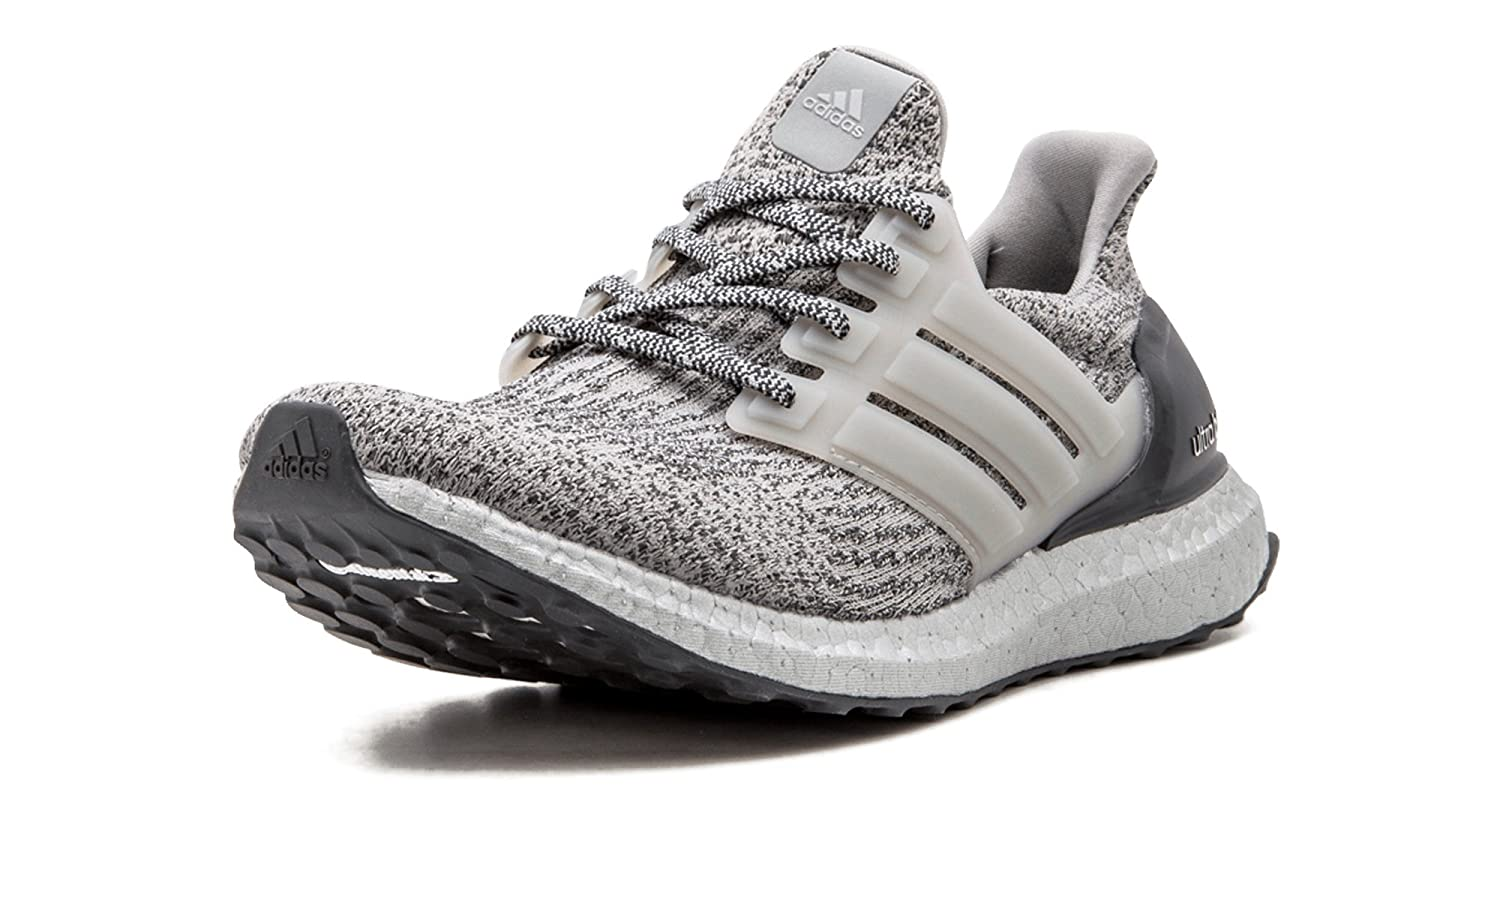 adidas Performance Men's Ultra Boost M Running Shoe B01N95E5EJ 10 D(M) US|Medium Grey Heather/Medium Grey Heather/Dark Grey Heather